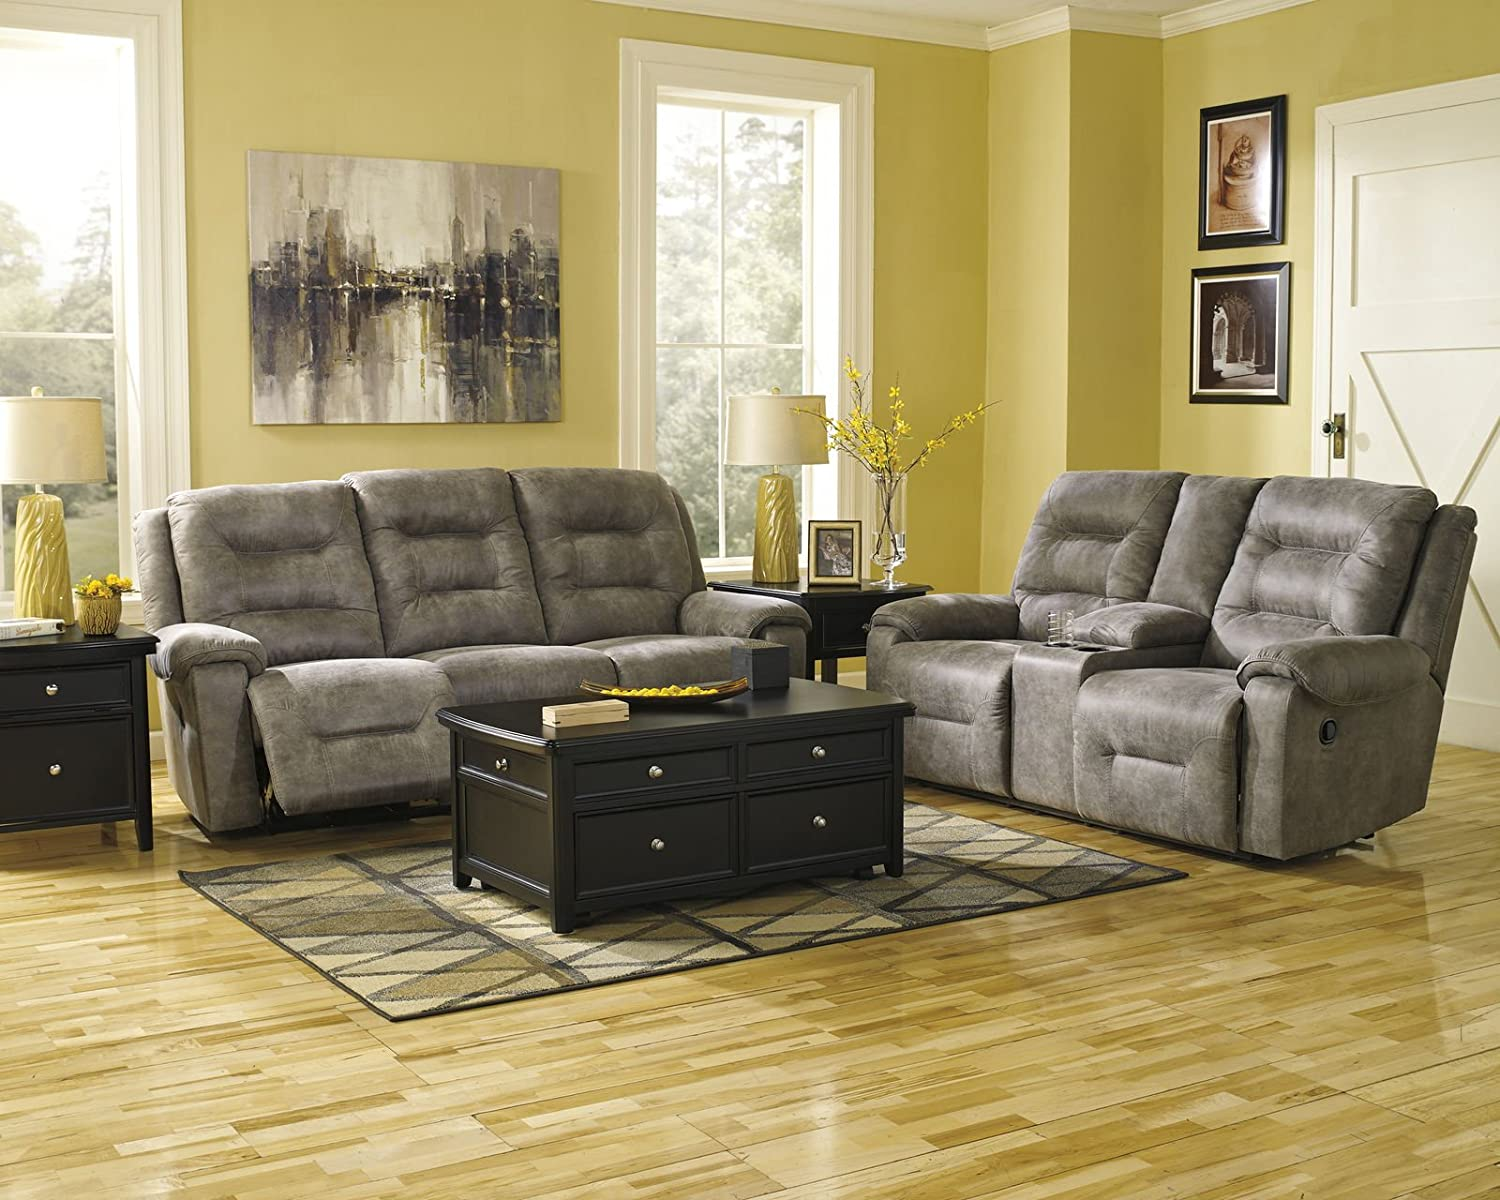 Amazon.com: Ashley Furniture Signature Design   Rotation Recliner Sofa    Manual Reclining Couch   Smoke Gray: Kitchen U0026 Dining